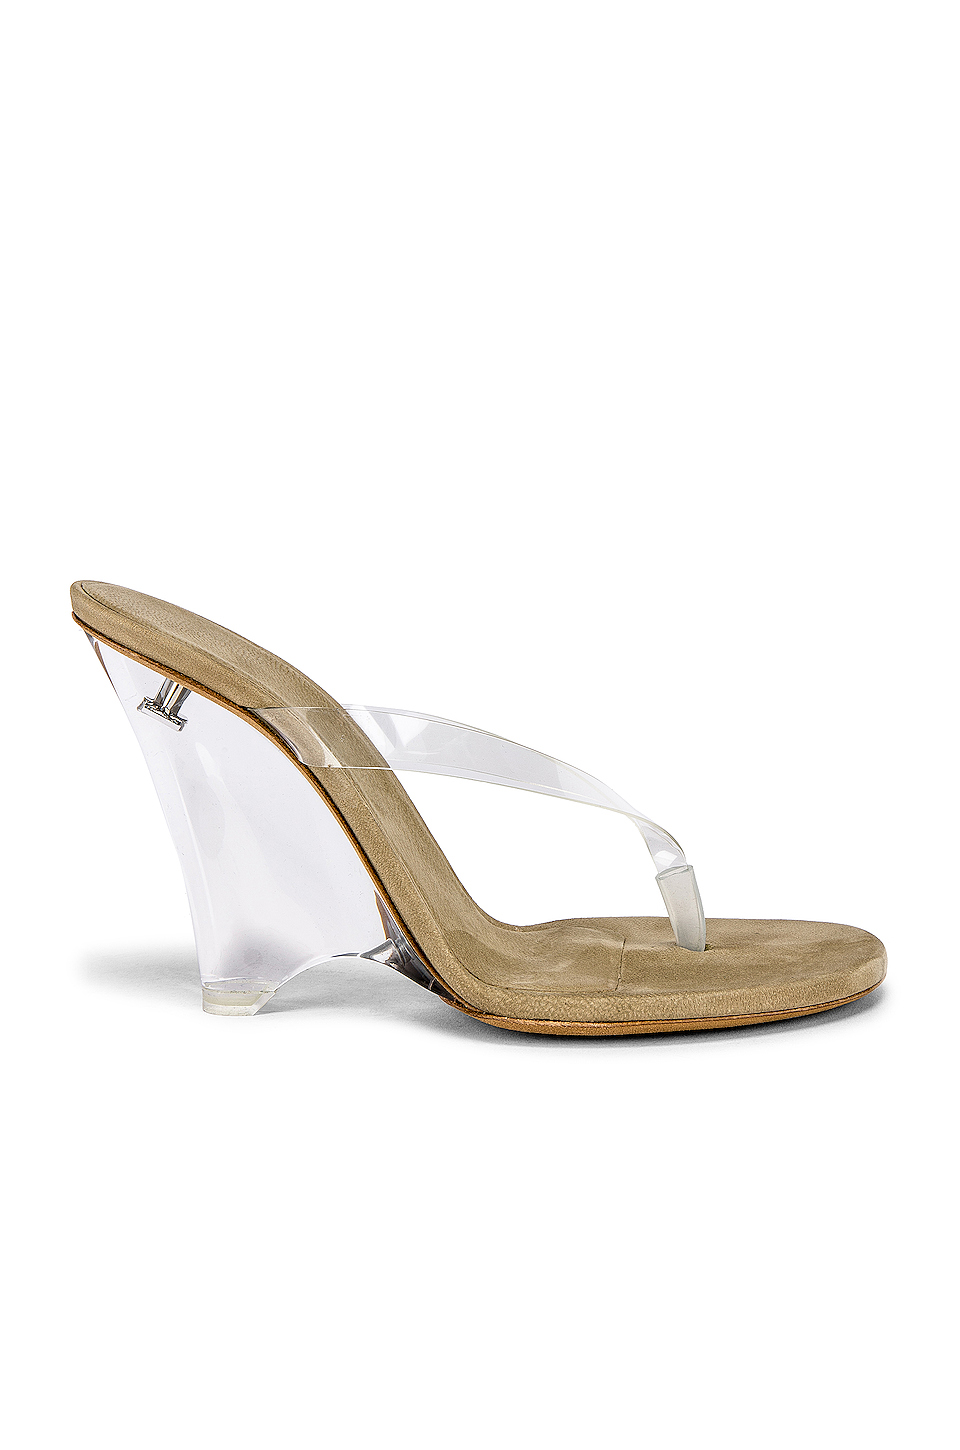 Season 8 Thong Sandals by Yeezy, available on revolve.com for $523 Kim Kardashian Shoes Exact Product